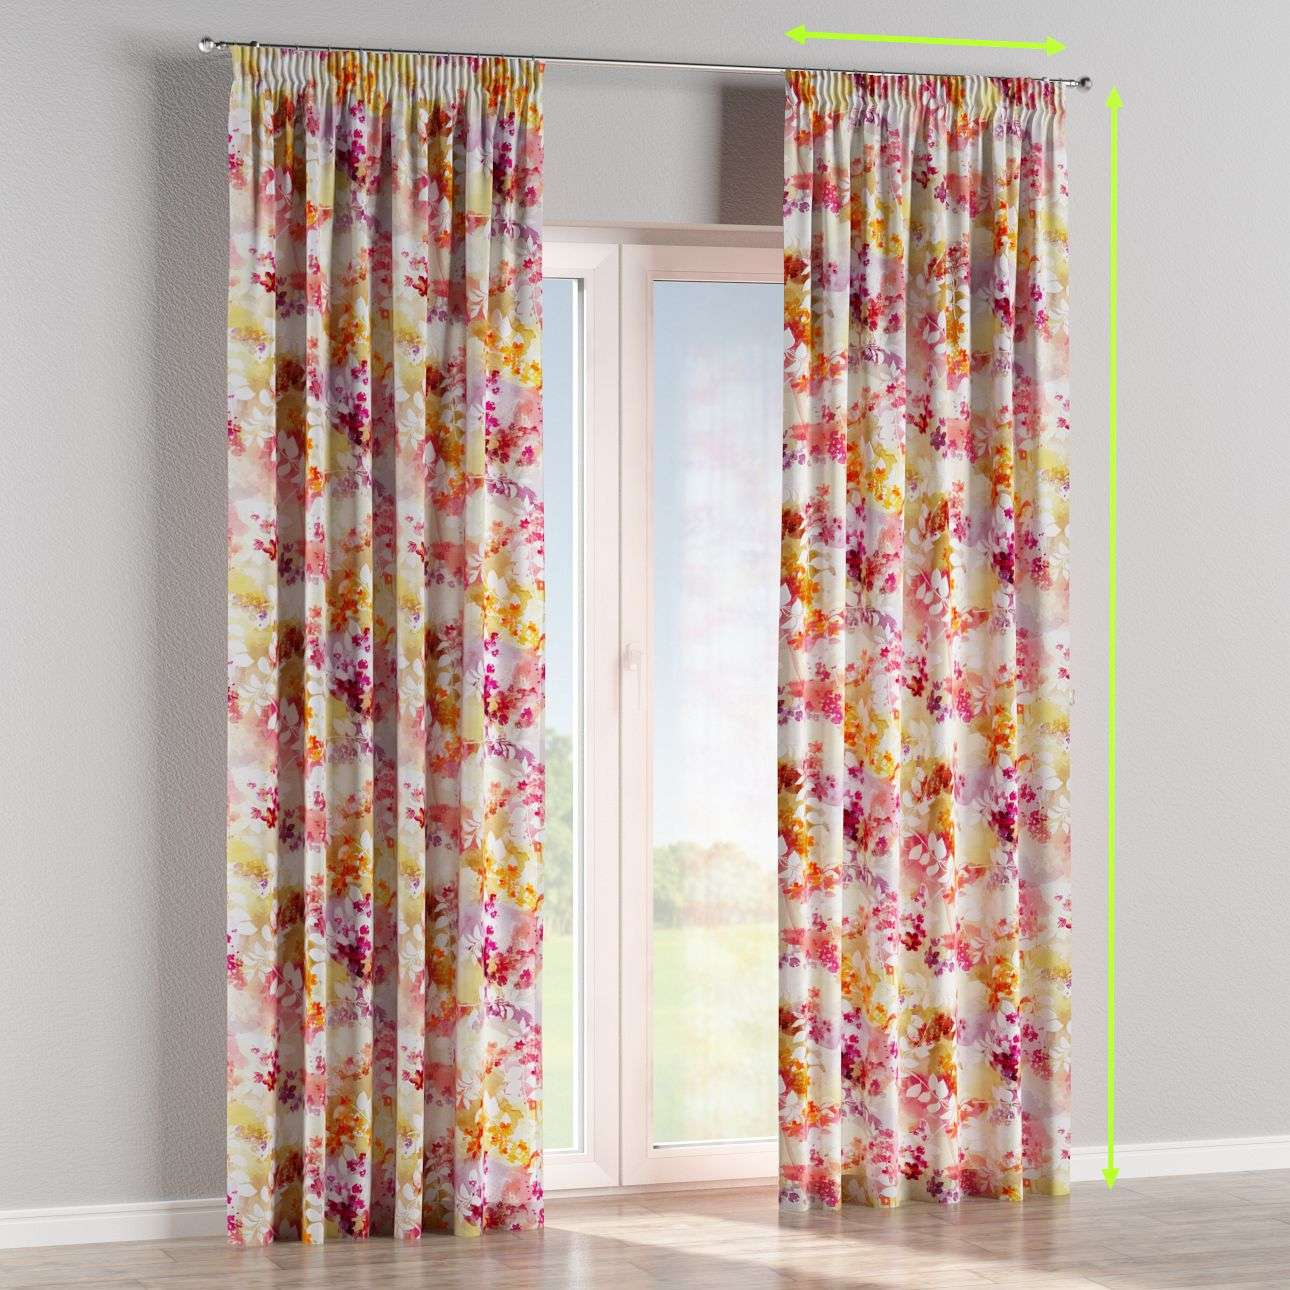 Pencil pleat lined curtains in collection Monet, fabric: 140-05